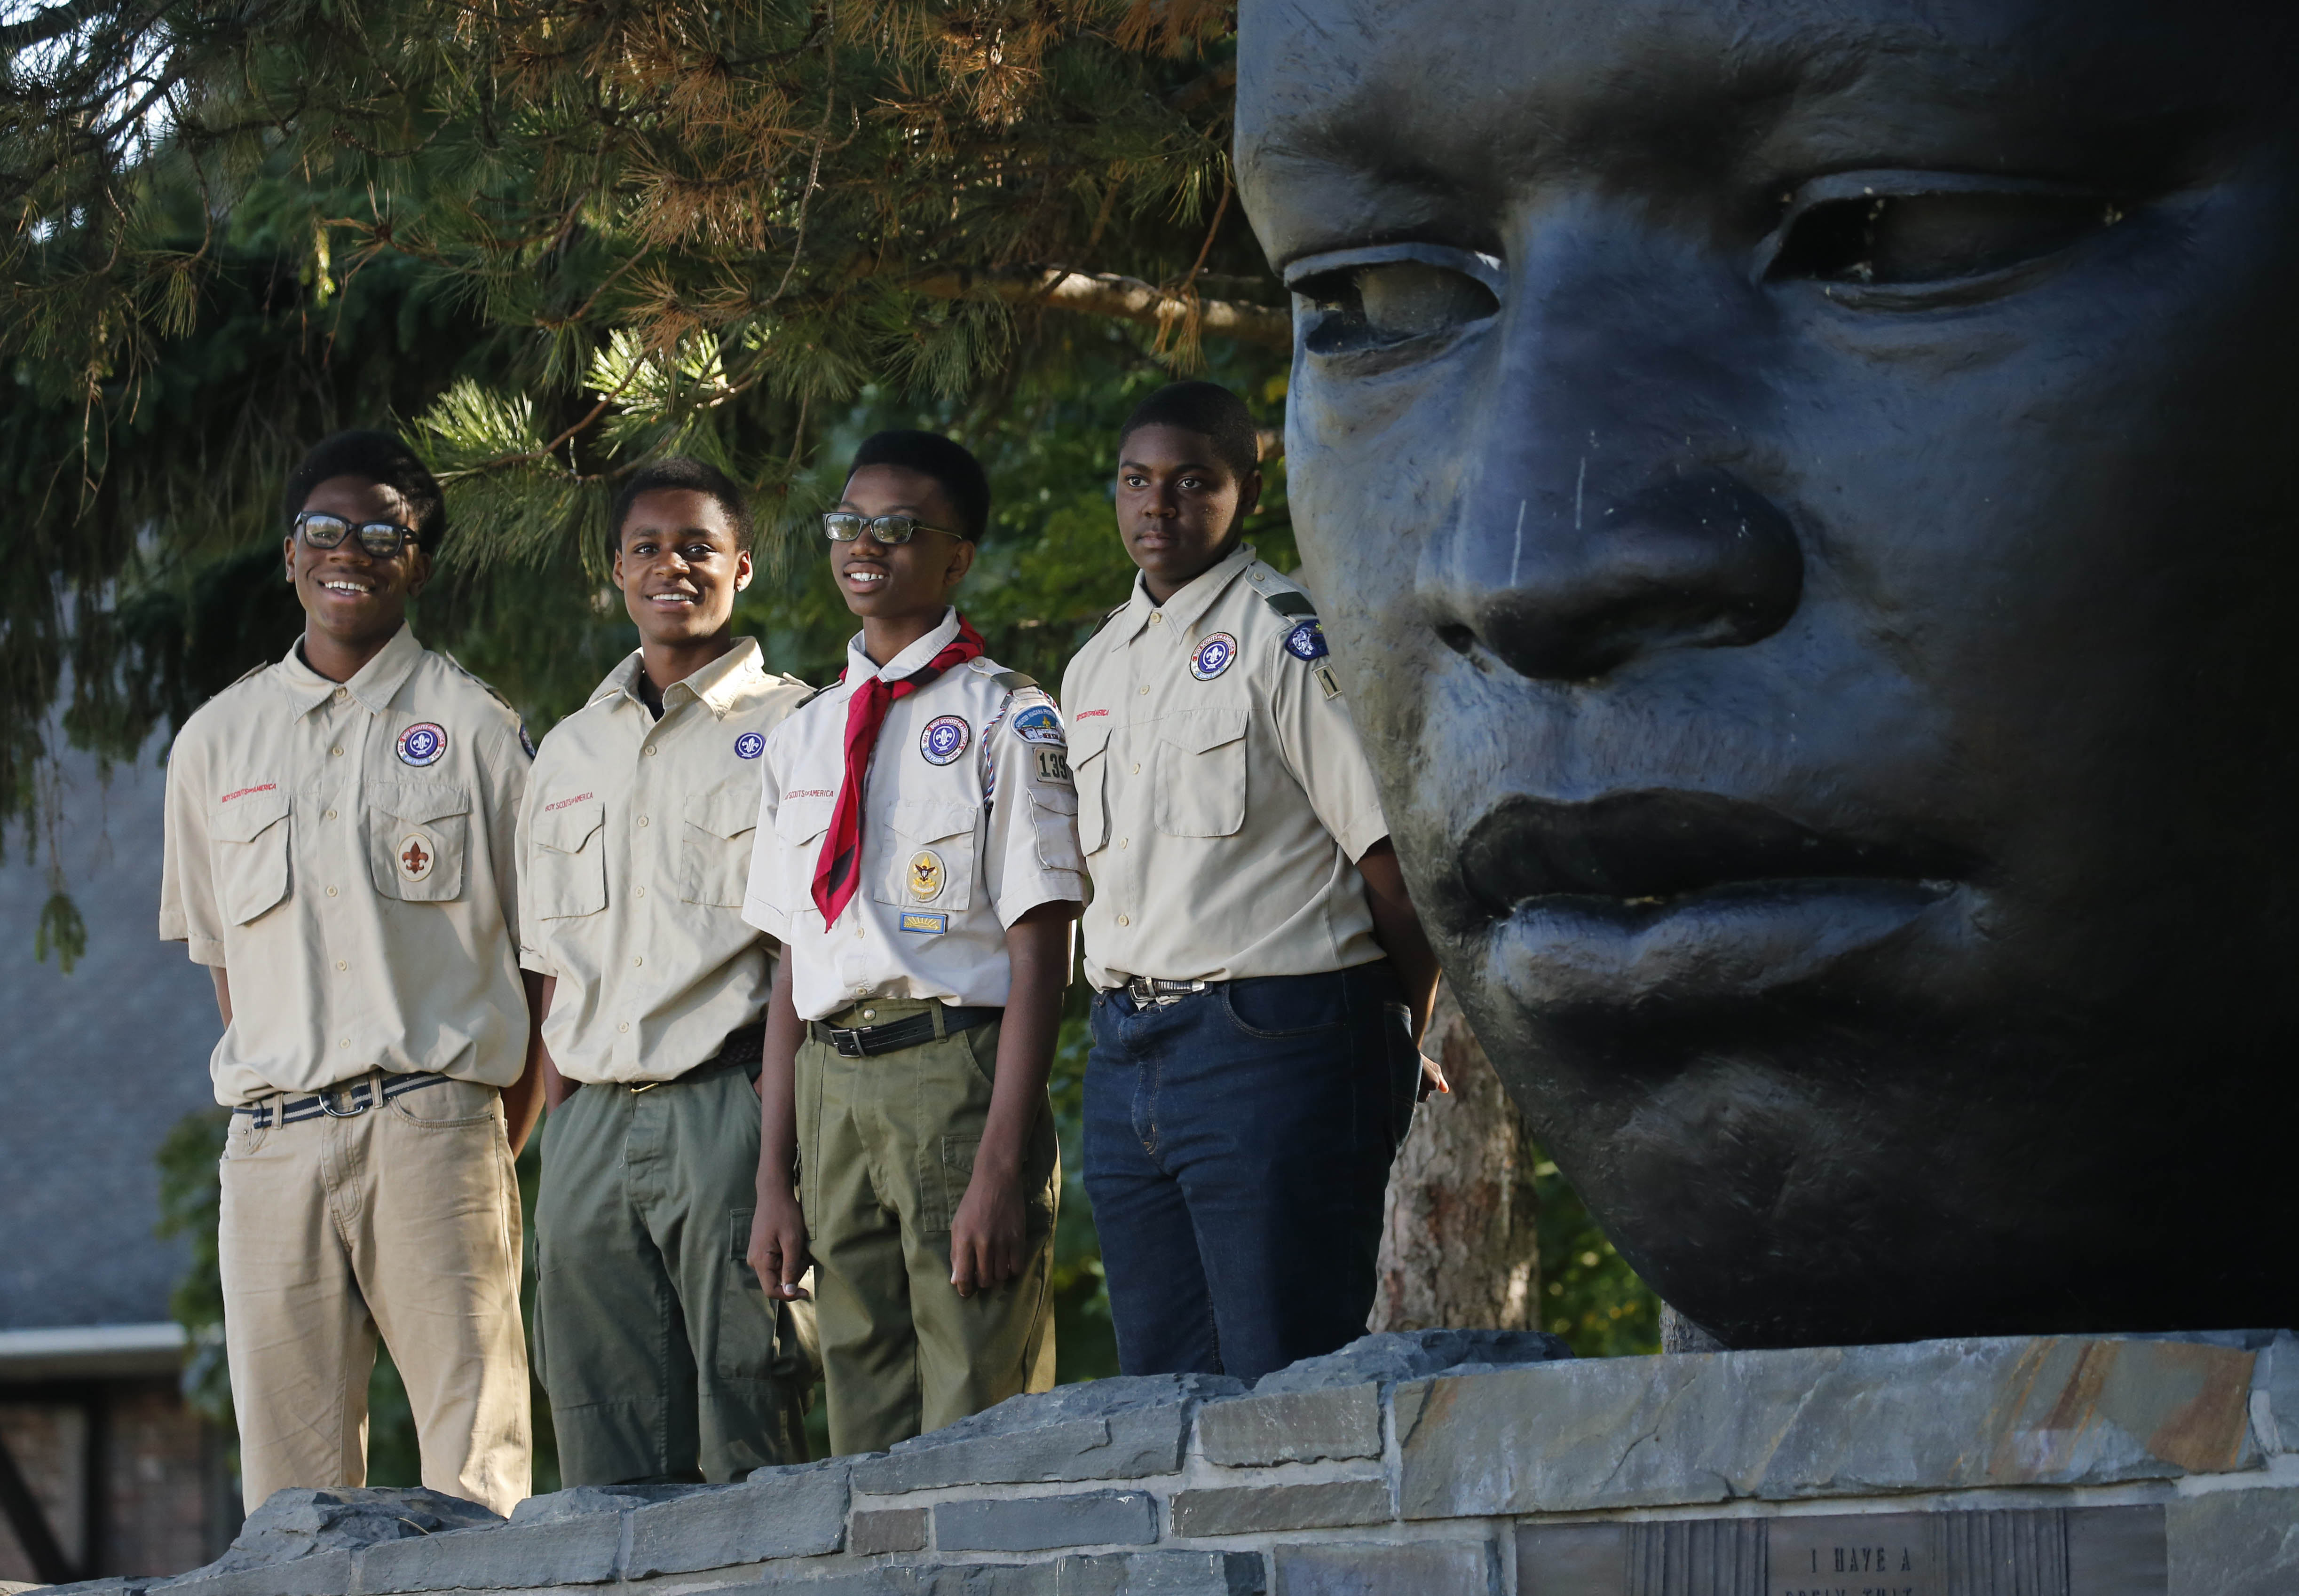 Boy Scouts, from left, Emmanuel Trueheart, 15, Ramon Winfrey, 17, Dekari Jackson, 13, and Jeffrey McMillan, 14, hiked from Niagara Falls to Martin Luther King Park in Buffalo to raise awareness about diabetes while working on a merit badge en route to become Eagle Scouts, Monday, Oct. 10, 2016.  (Derek Gee/Buffalo News)